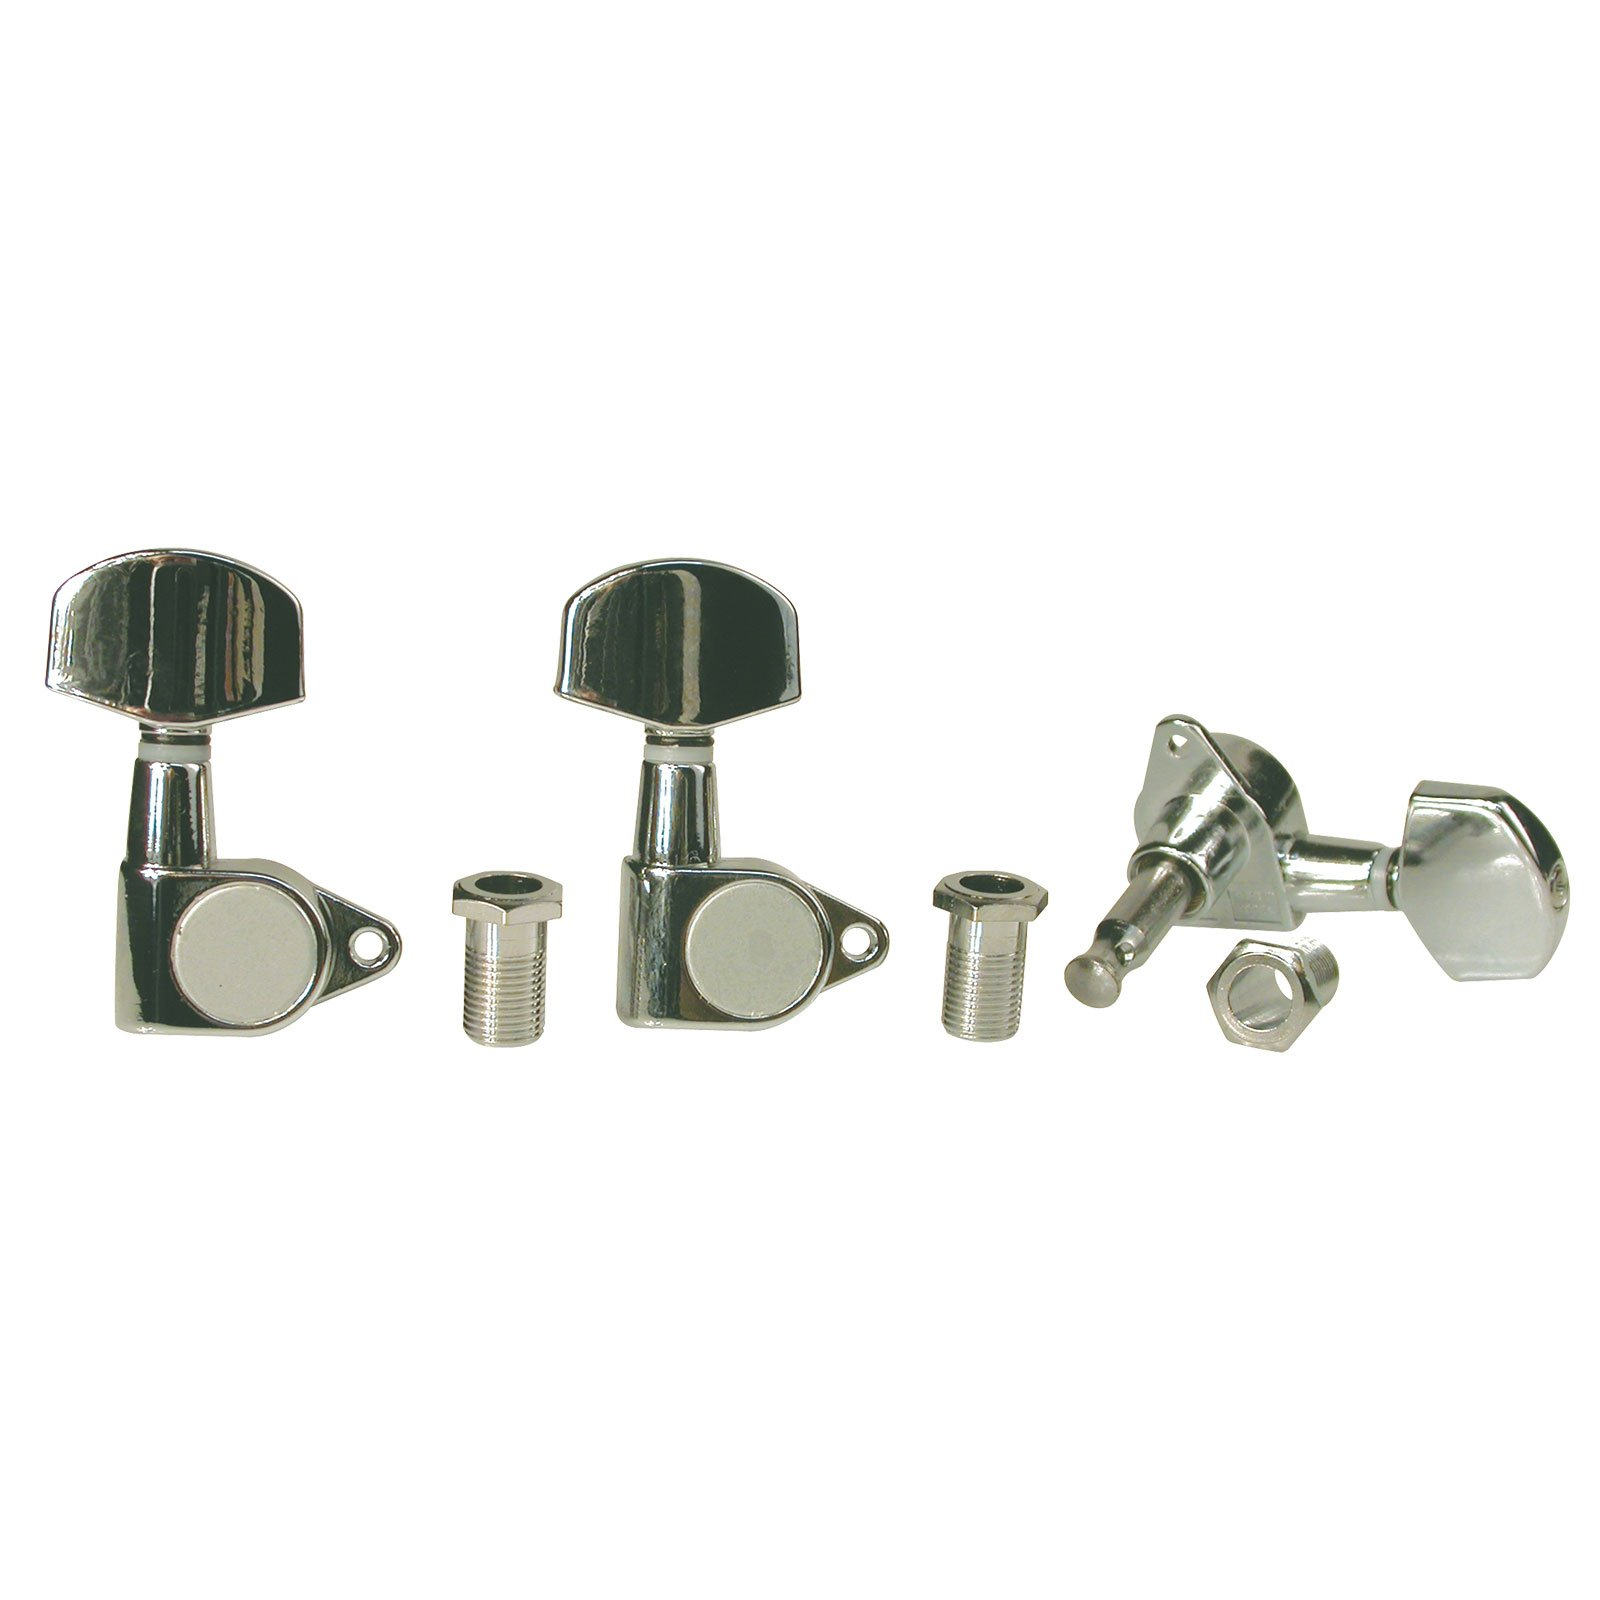 Golden Gate F-2060 Acoustic Guitar Tuners - 6 Individual (3+3) - Chrome